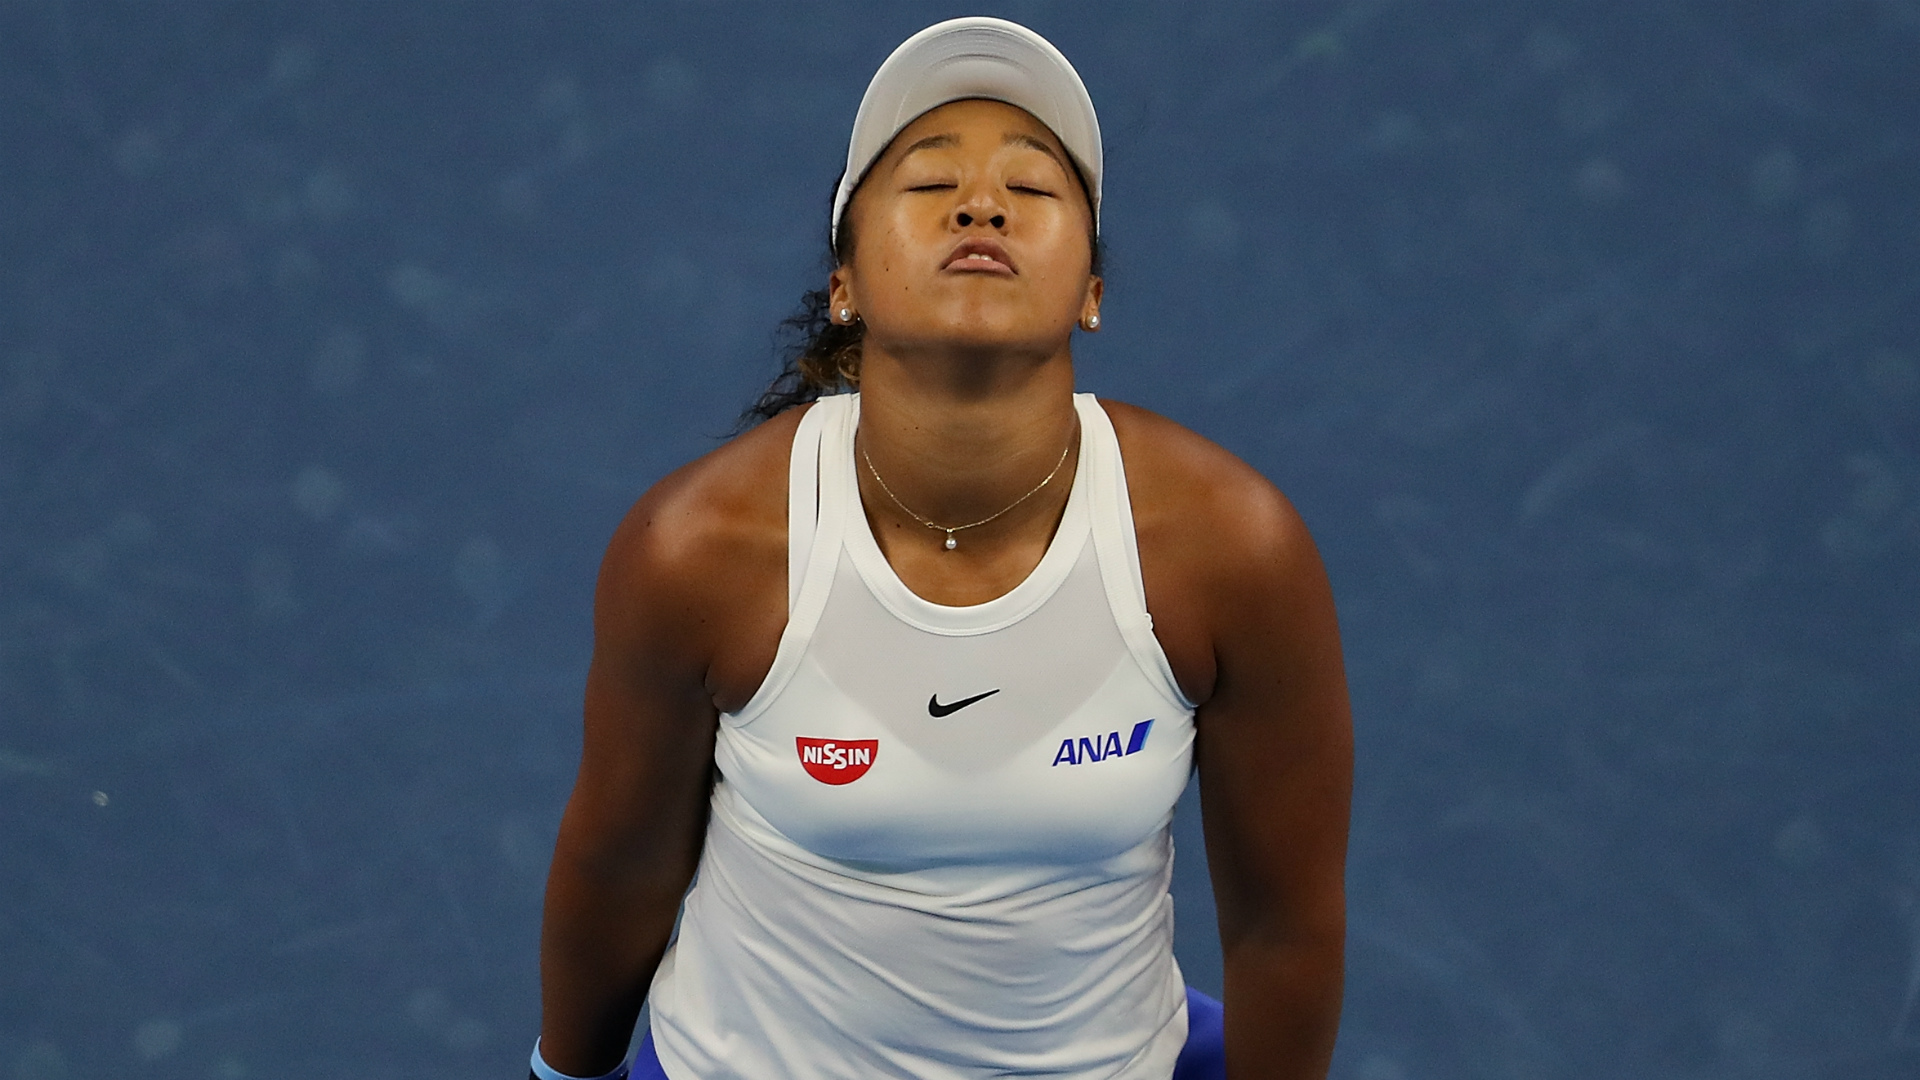 Naomi Osaka battling sleep deprivation ahead of Ash Barty showdown in China Open final